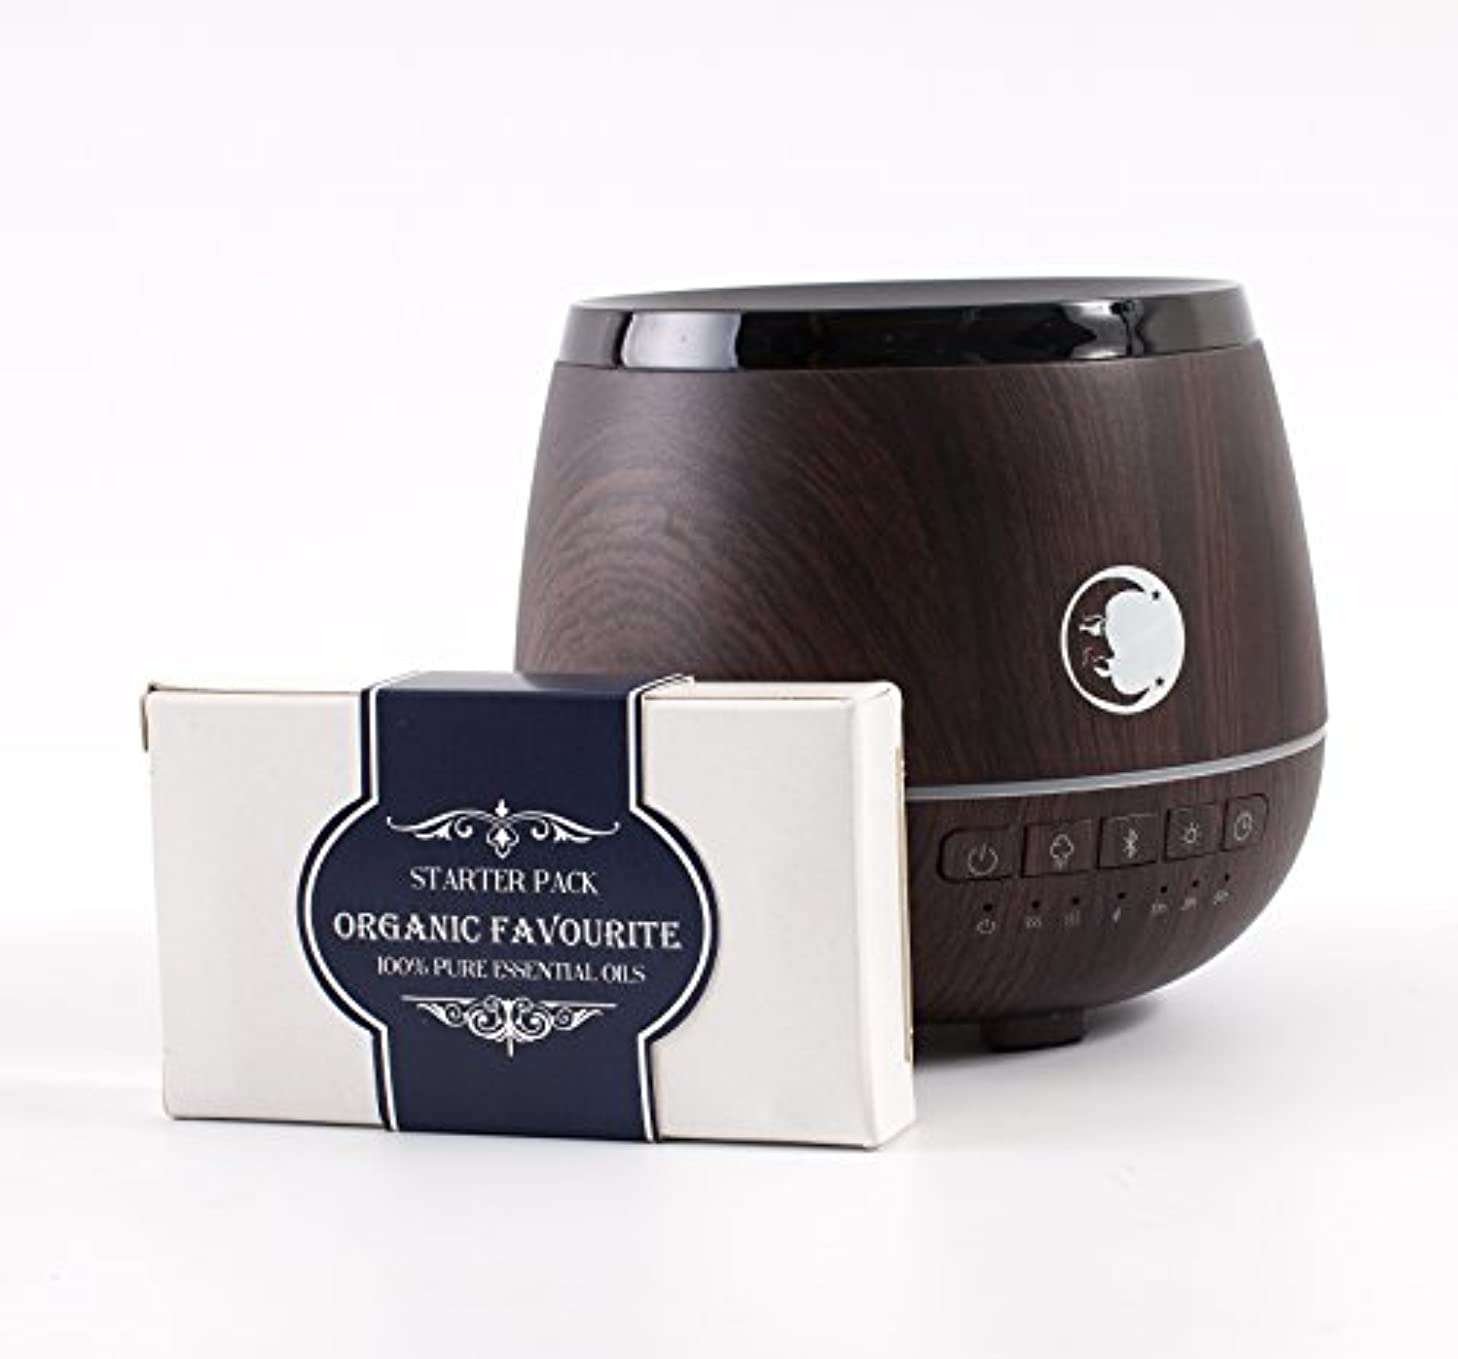 アーカイブ難破船タイルMystic Moments | Wood Effect Aromatherapy Oil Ultrasonic Diffuser With Bluetooth Speaker & LED Lights + Organic Favourite Essential Oil Gift Starter Pack